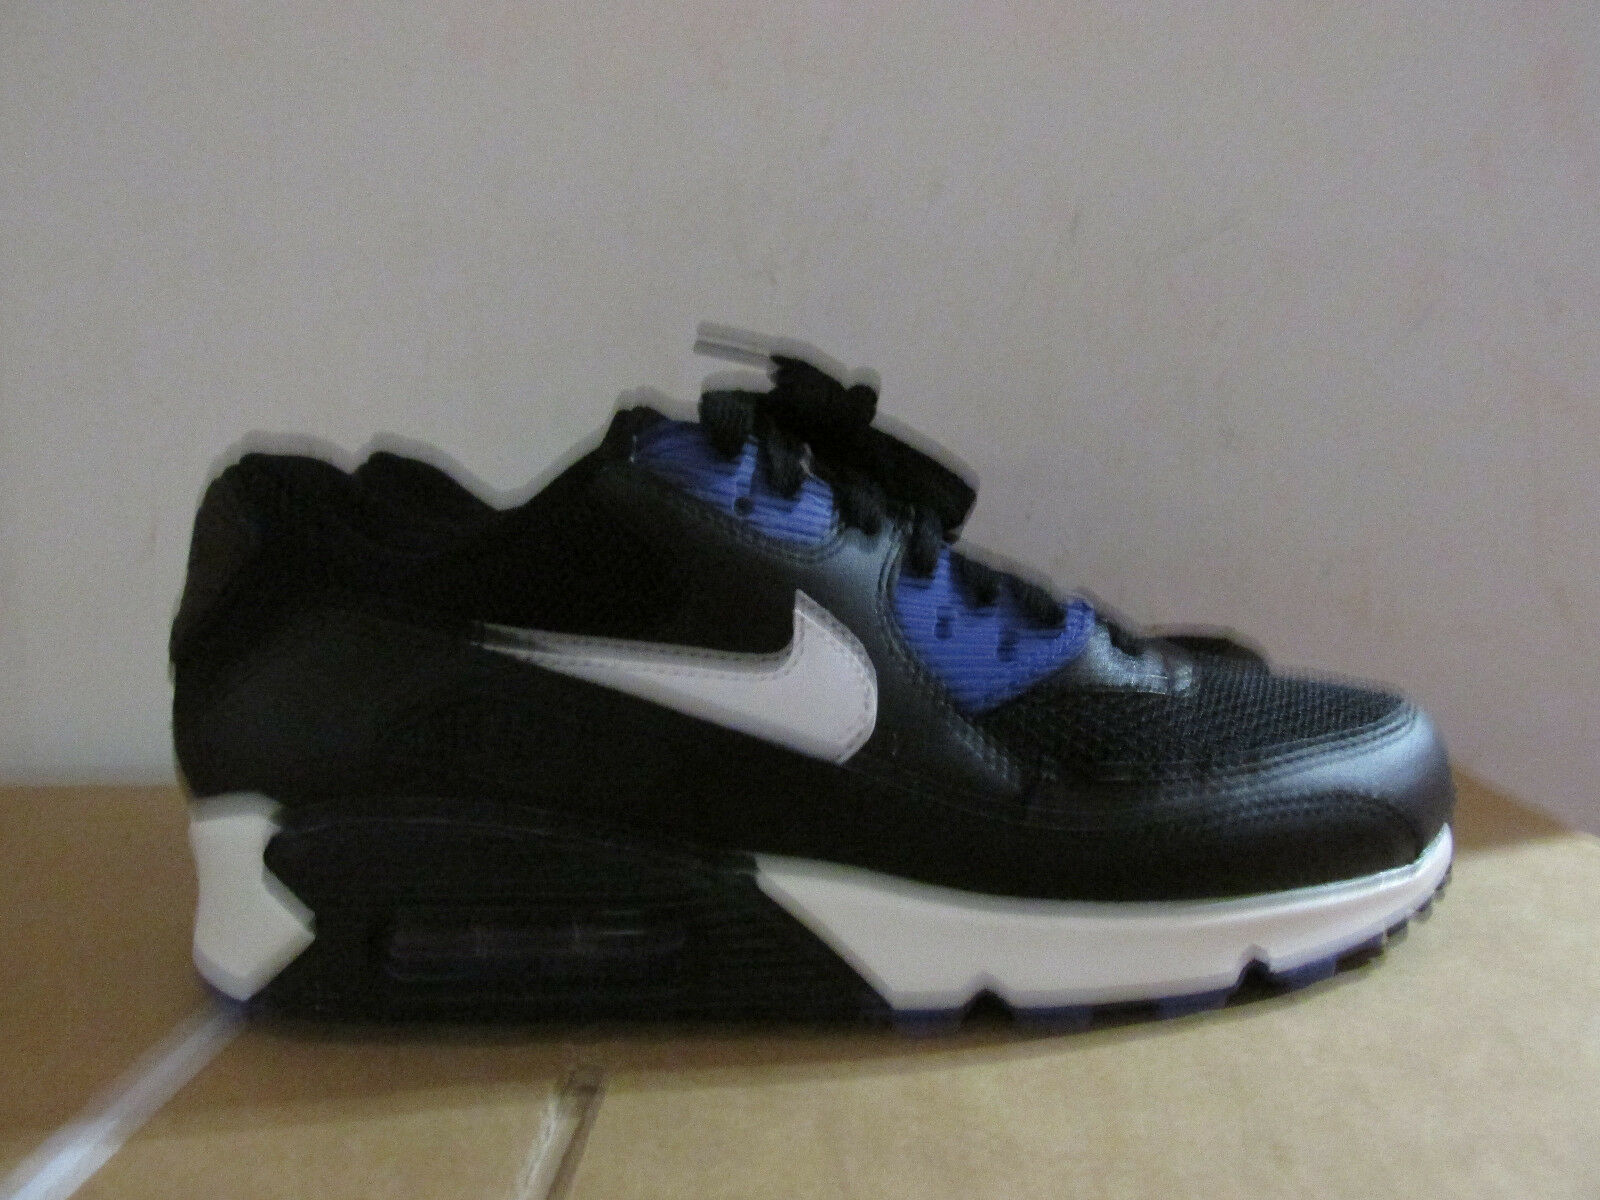 Nike  Air Max 90 Essential  Nike s Running Trainers 537384 052 Baskets De DégageHommes t 11a3c0